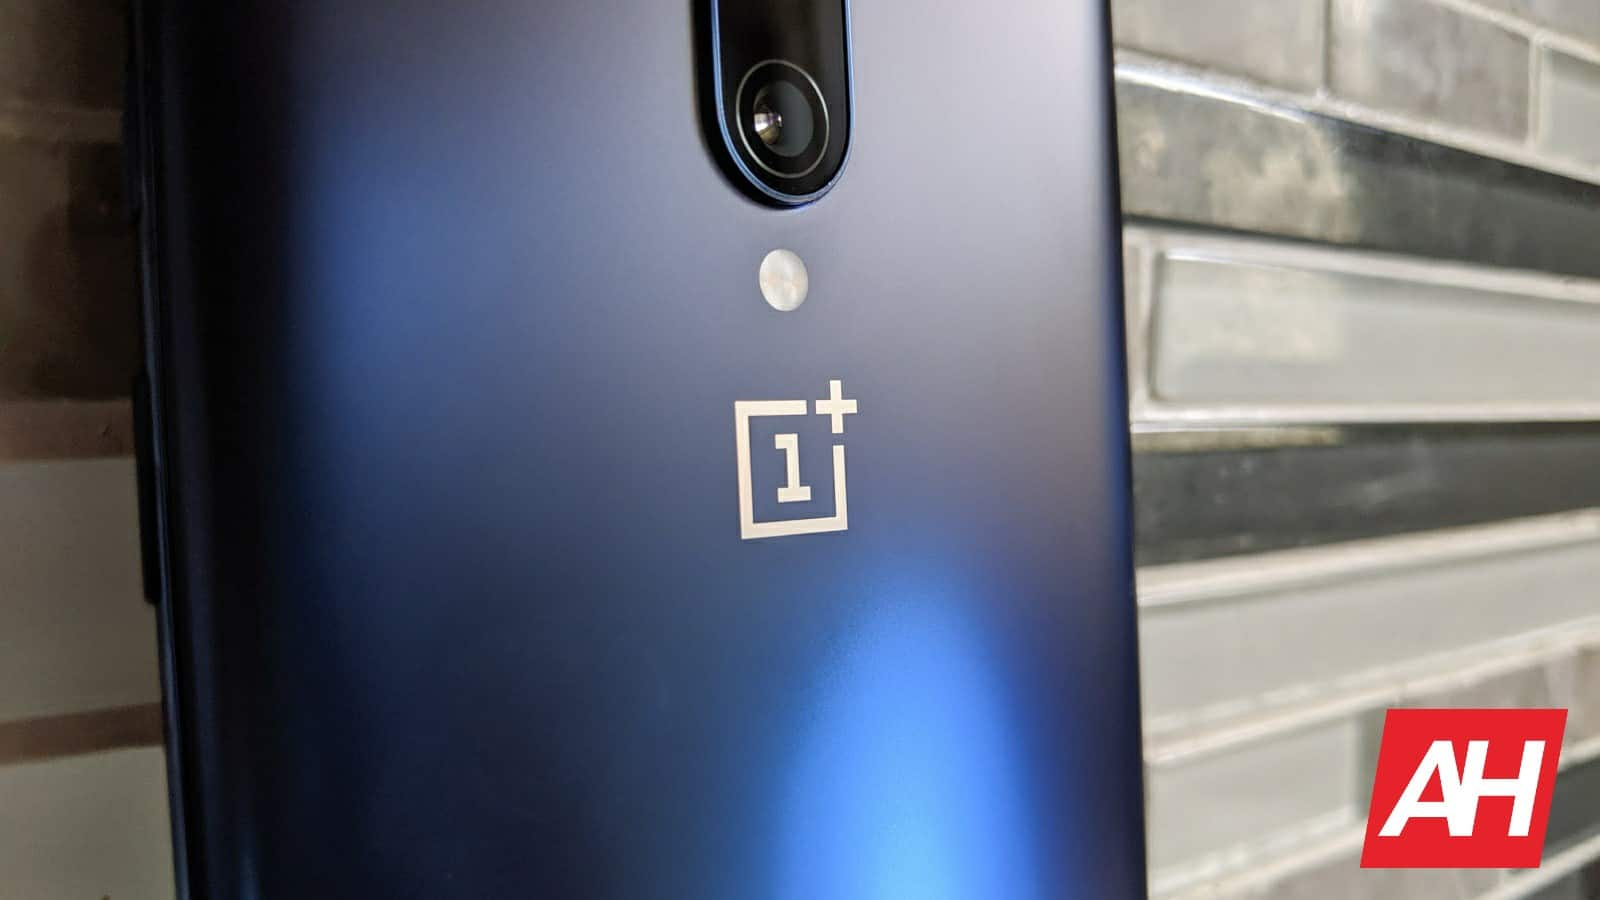 OnePlus Makes the OnePlus 8 and OnePlus 8 Pro Official